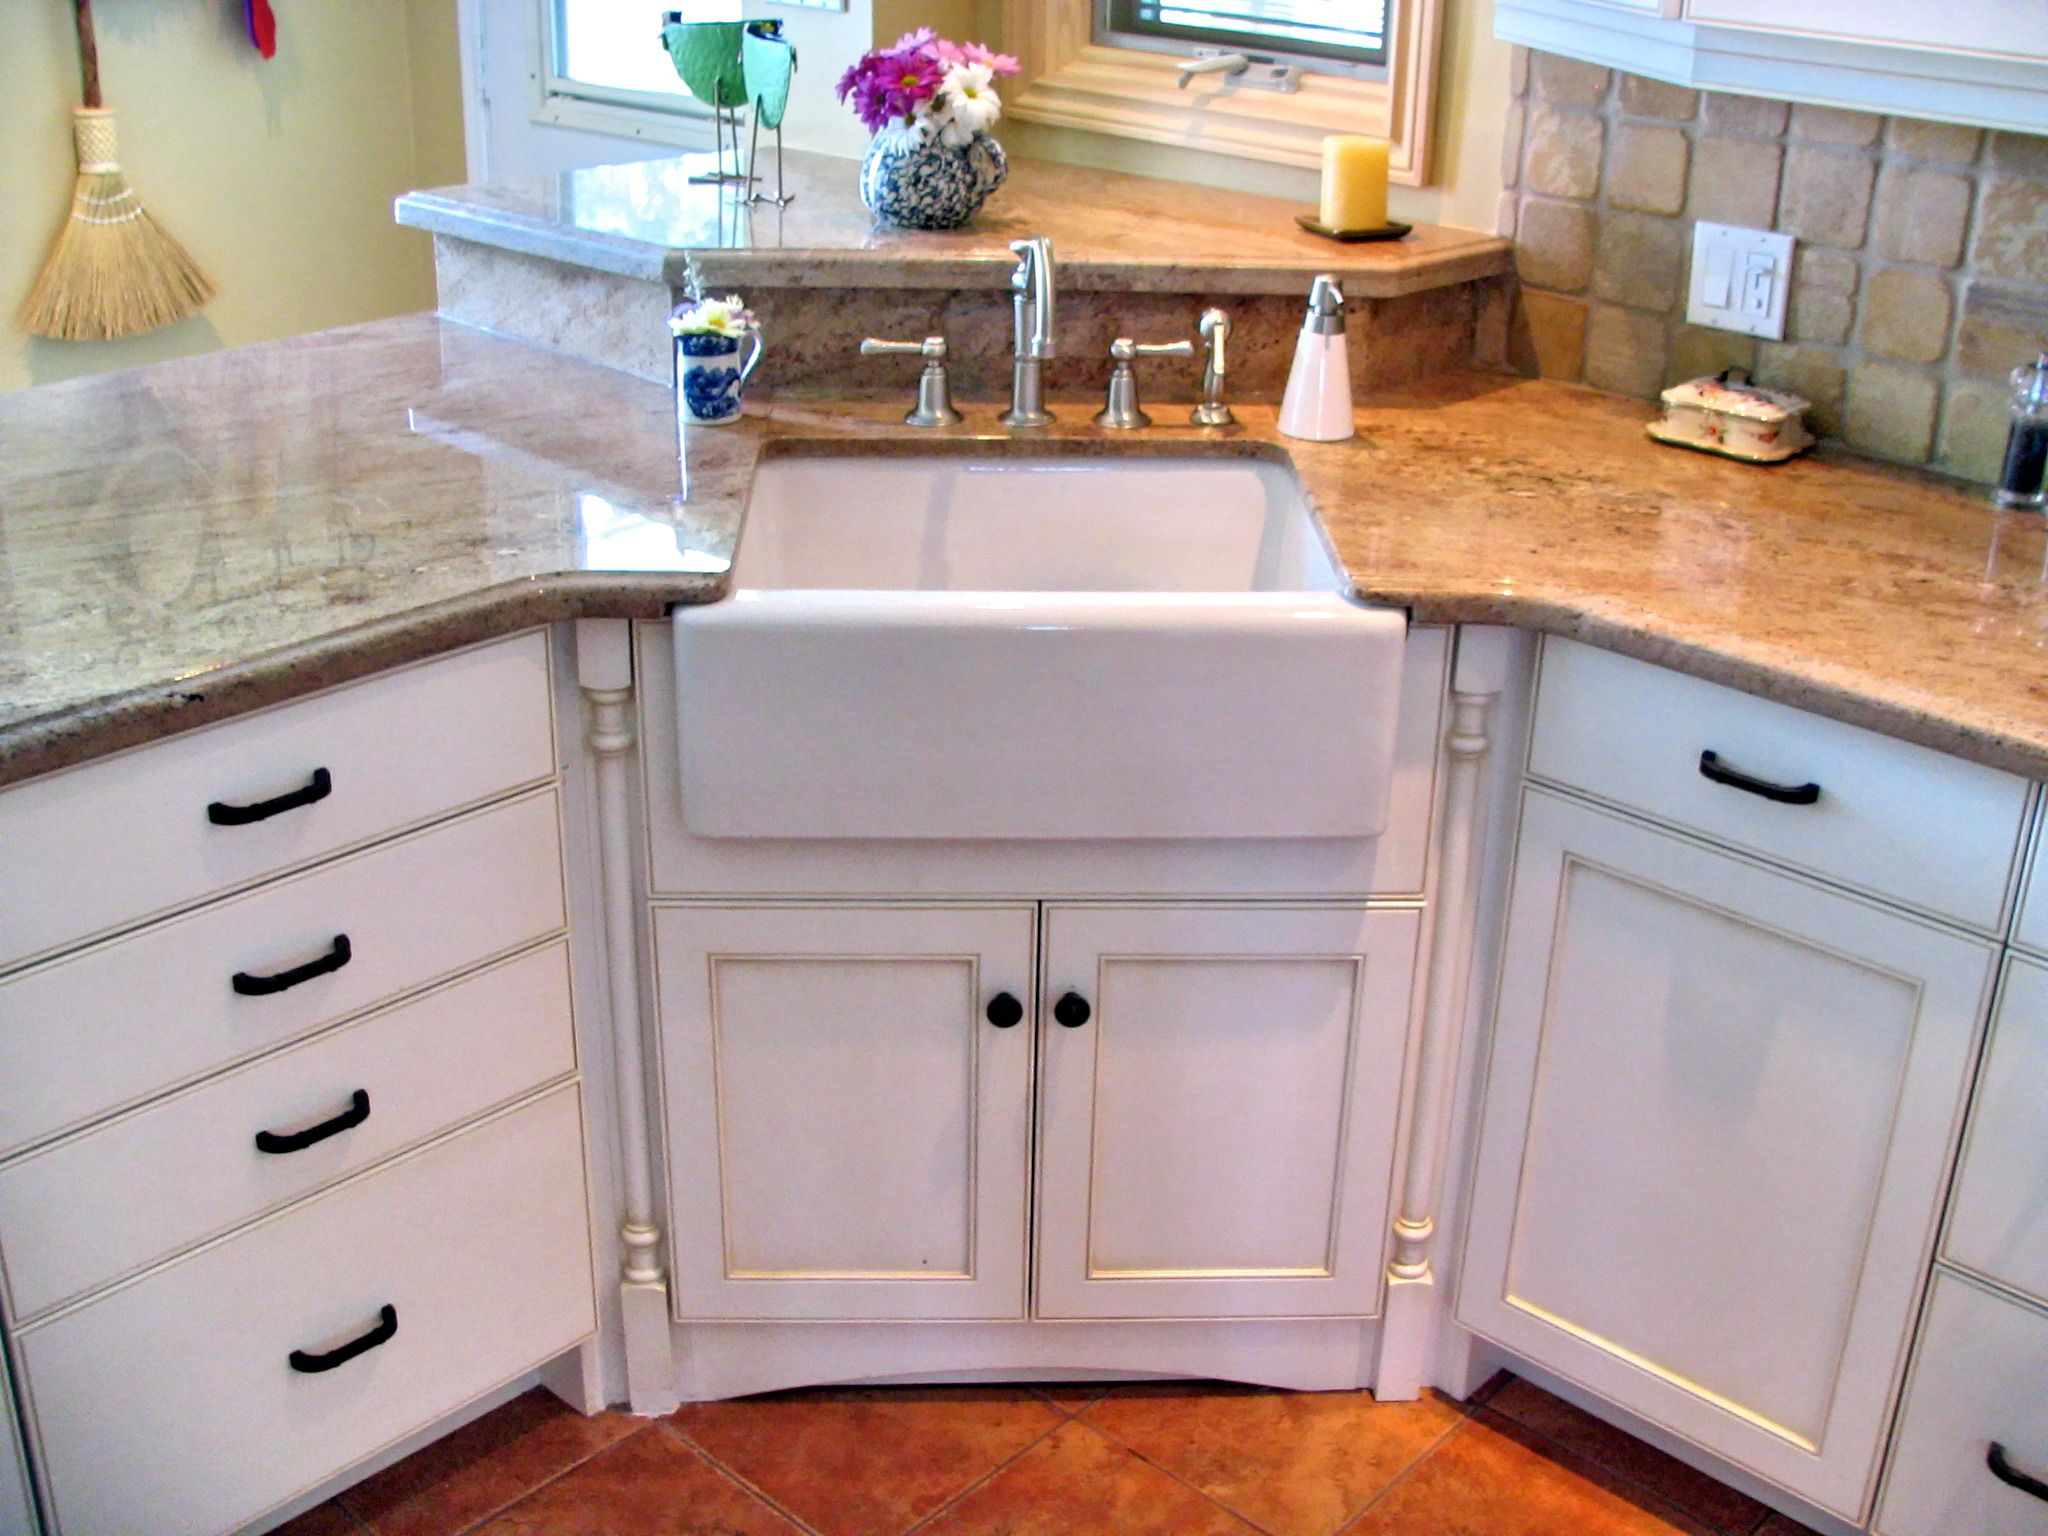 Best Corner Undermounted Apron Sink Flanked By Decorative 400 x 300